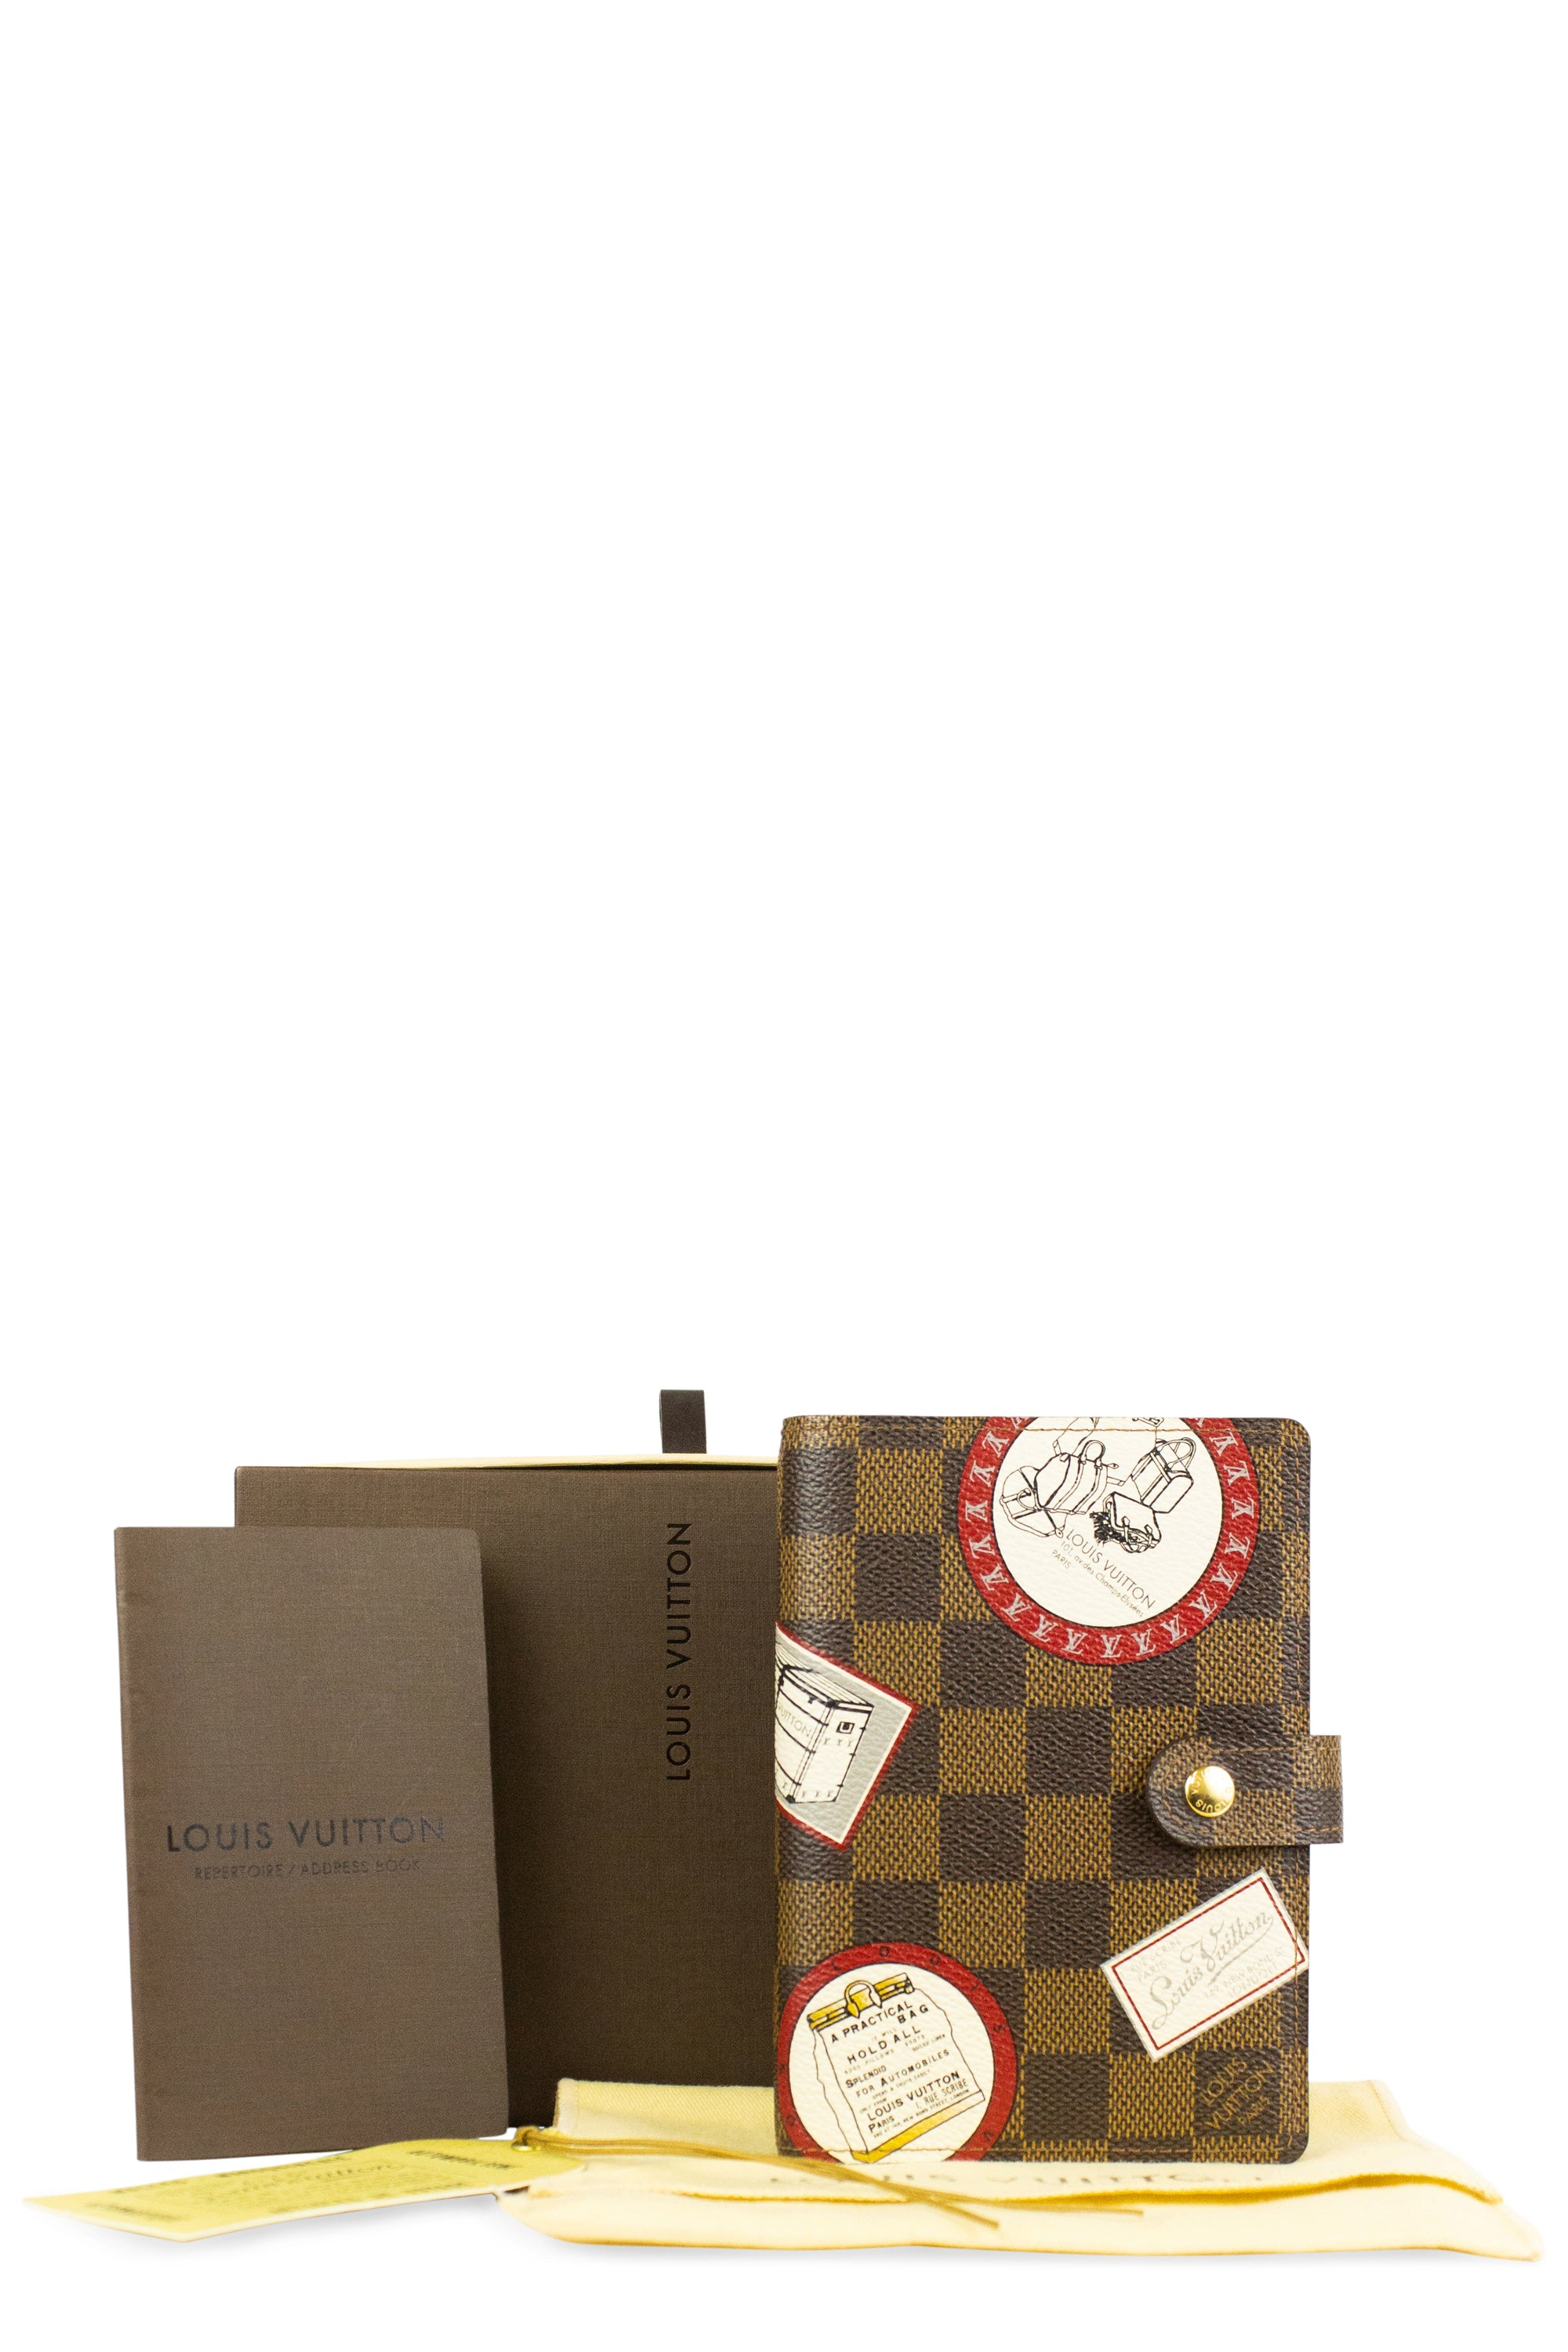 Louis Vuitton Damier Ebene Agenda Article de Voyage Full Set